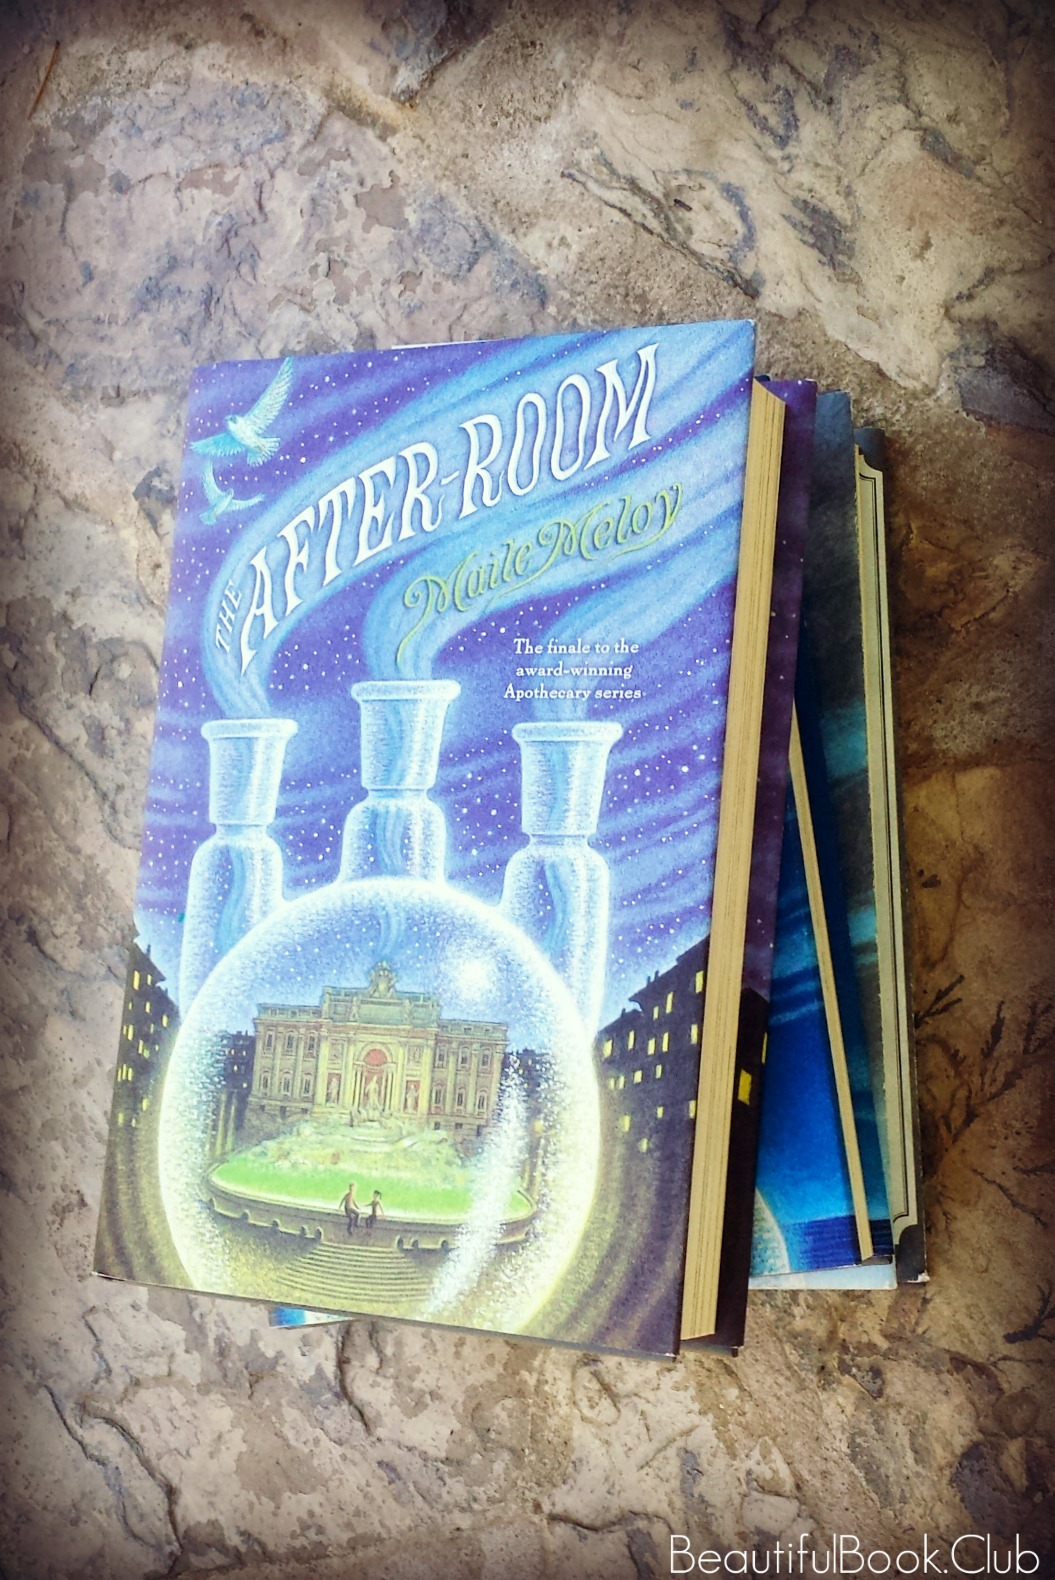 The After-room by Maile Meloy front cover on top of books